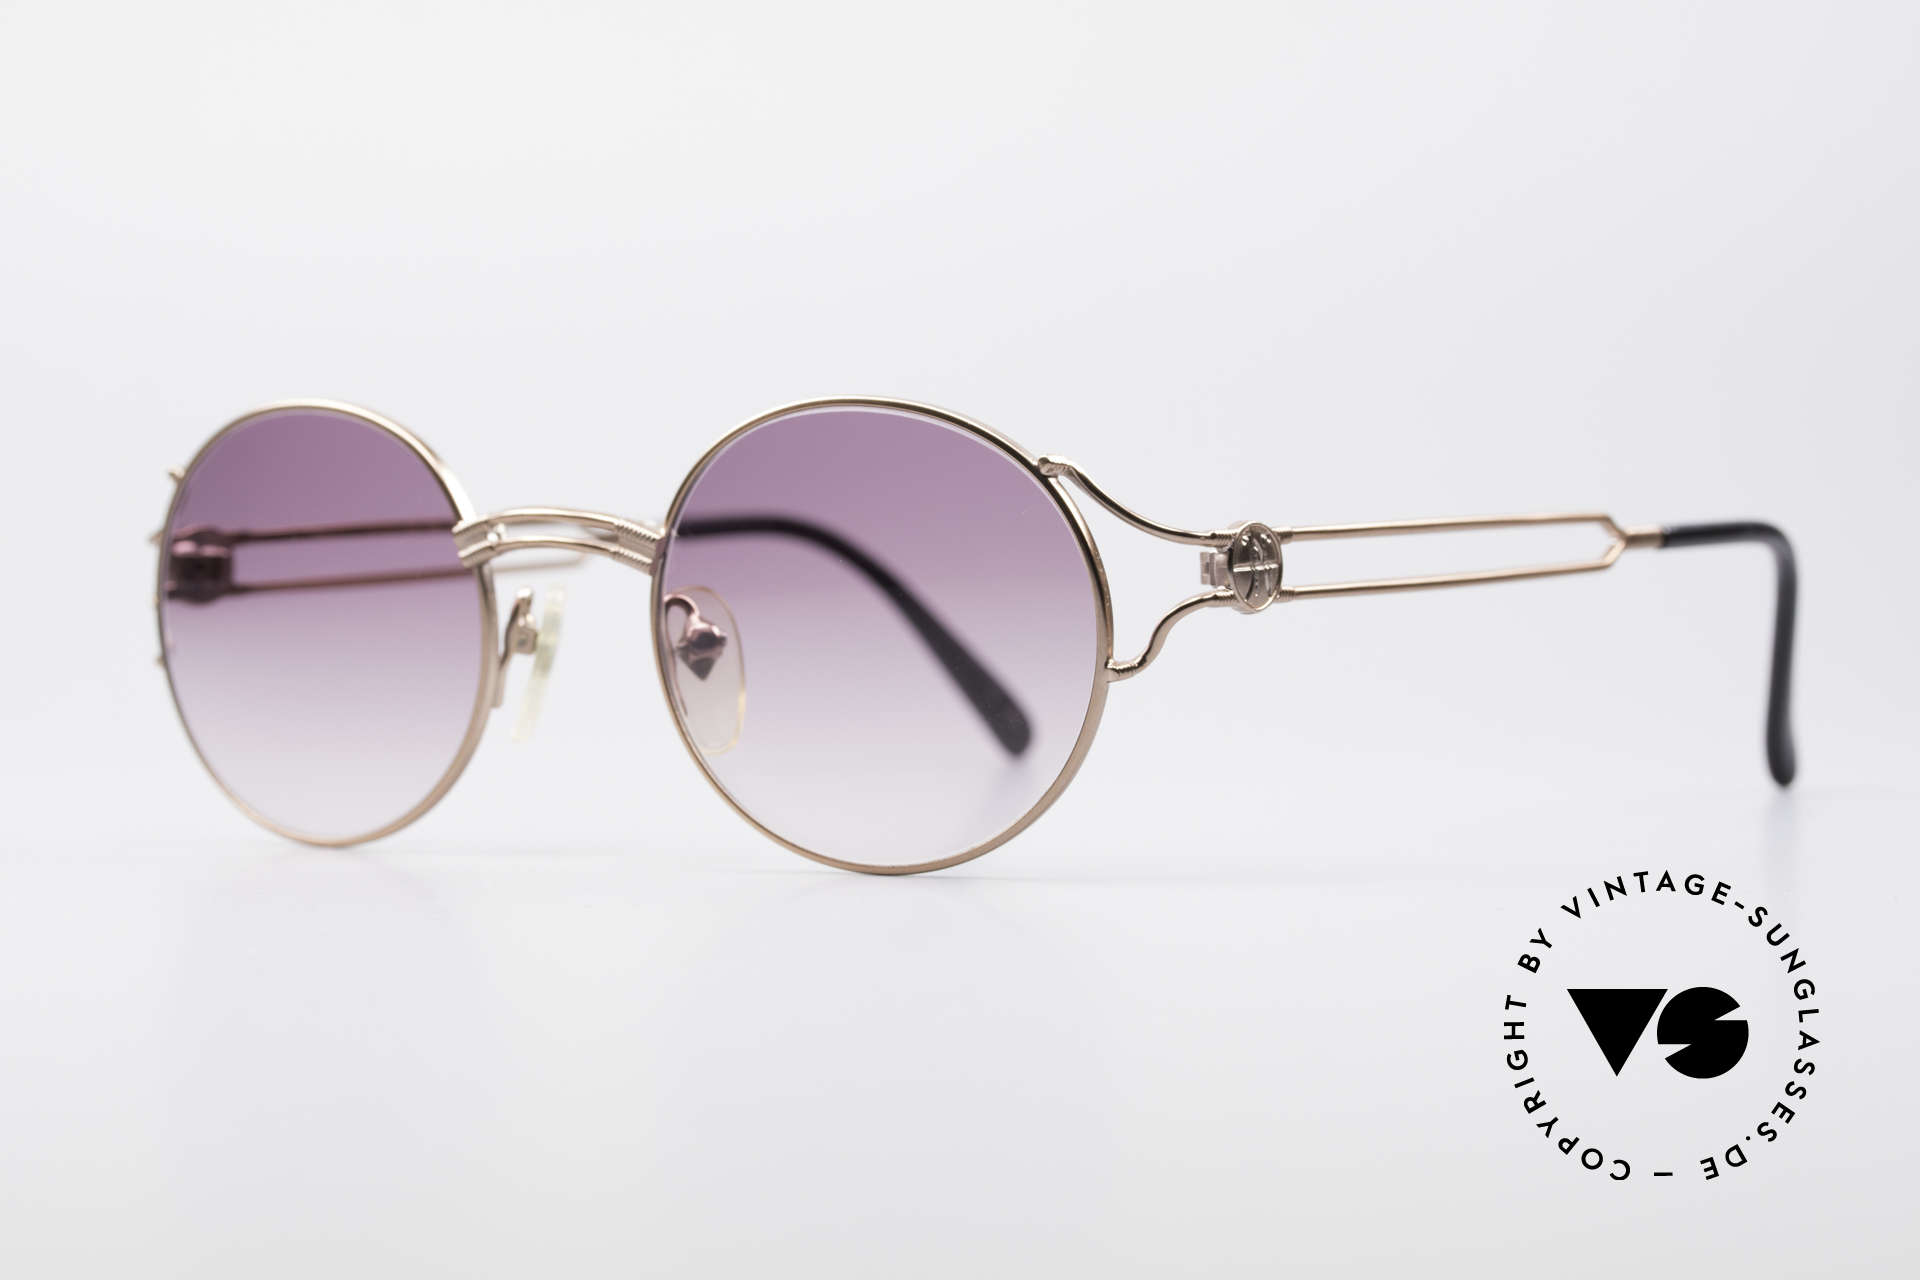 Jean Paul Gaultier 57-6102 Round Designer Sunglasses, timeless masterpiece; made in Japan (high-end quality), Made for Men and Women